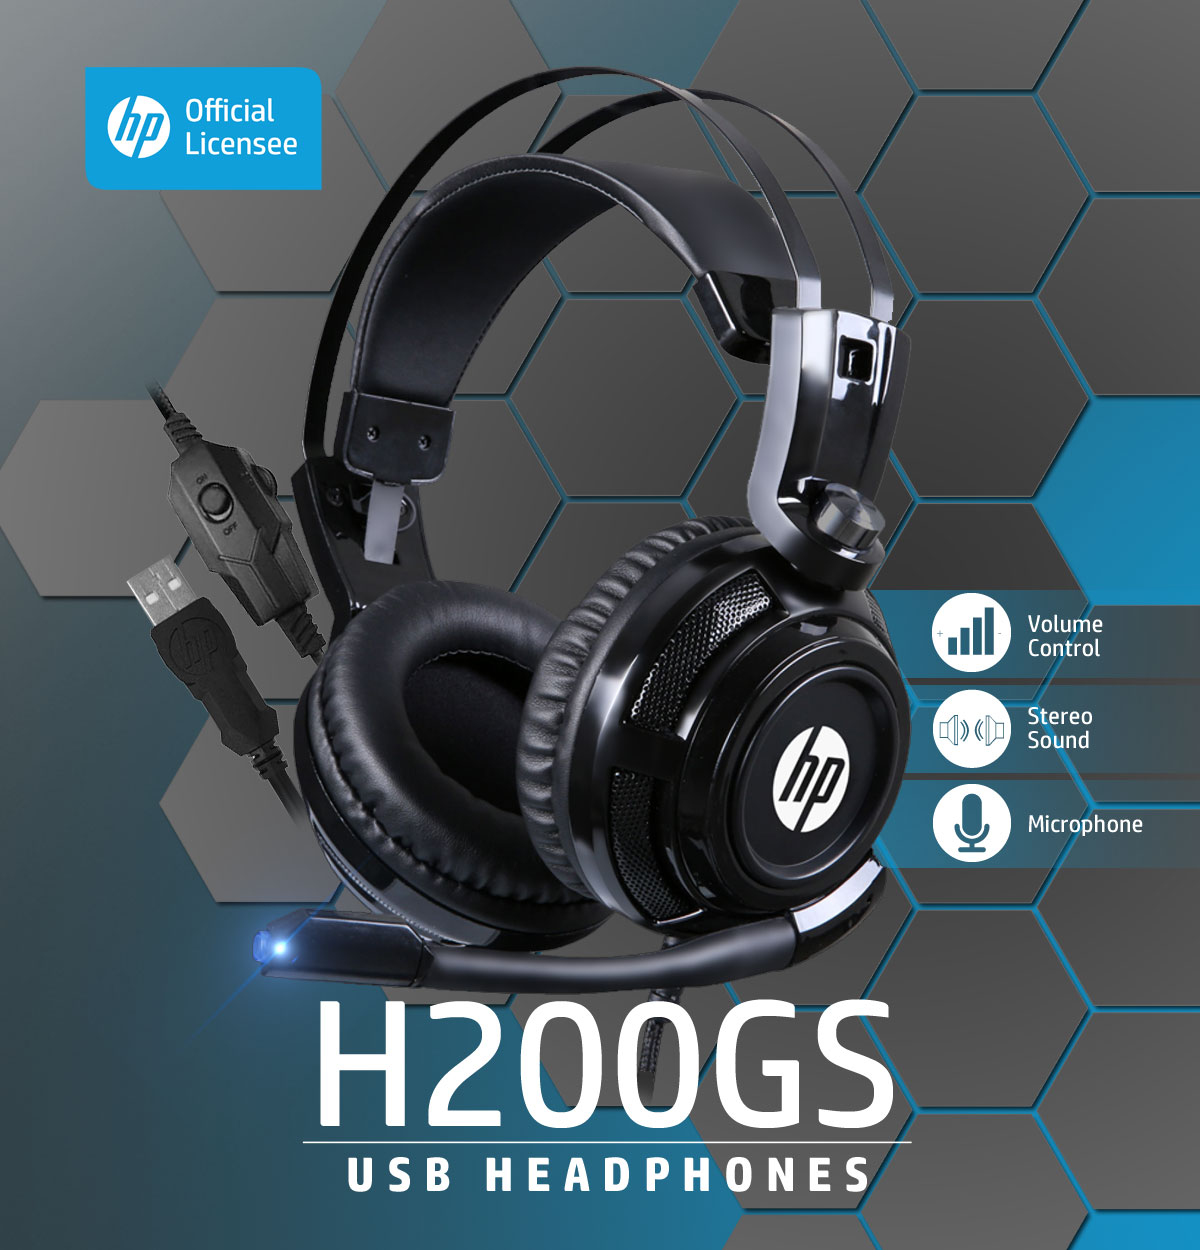 HP H200GS USB Headphone